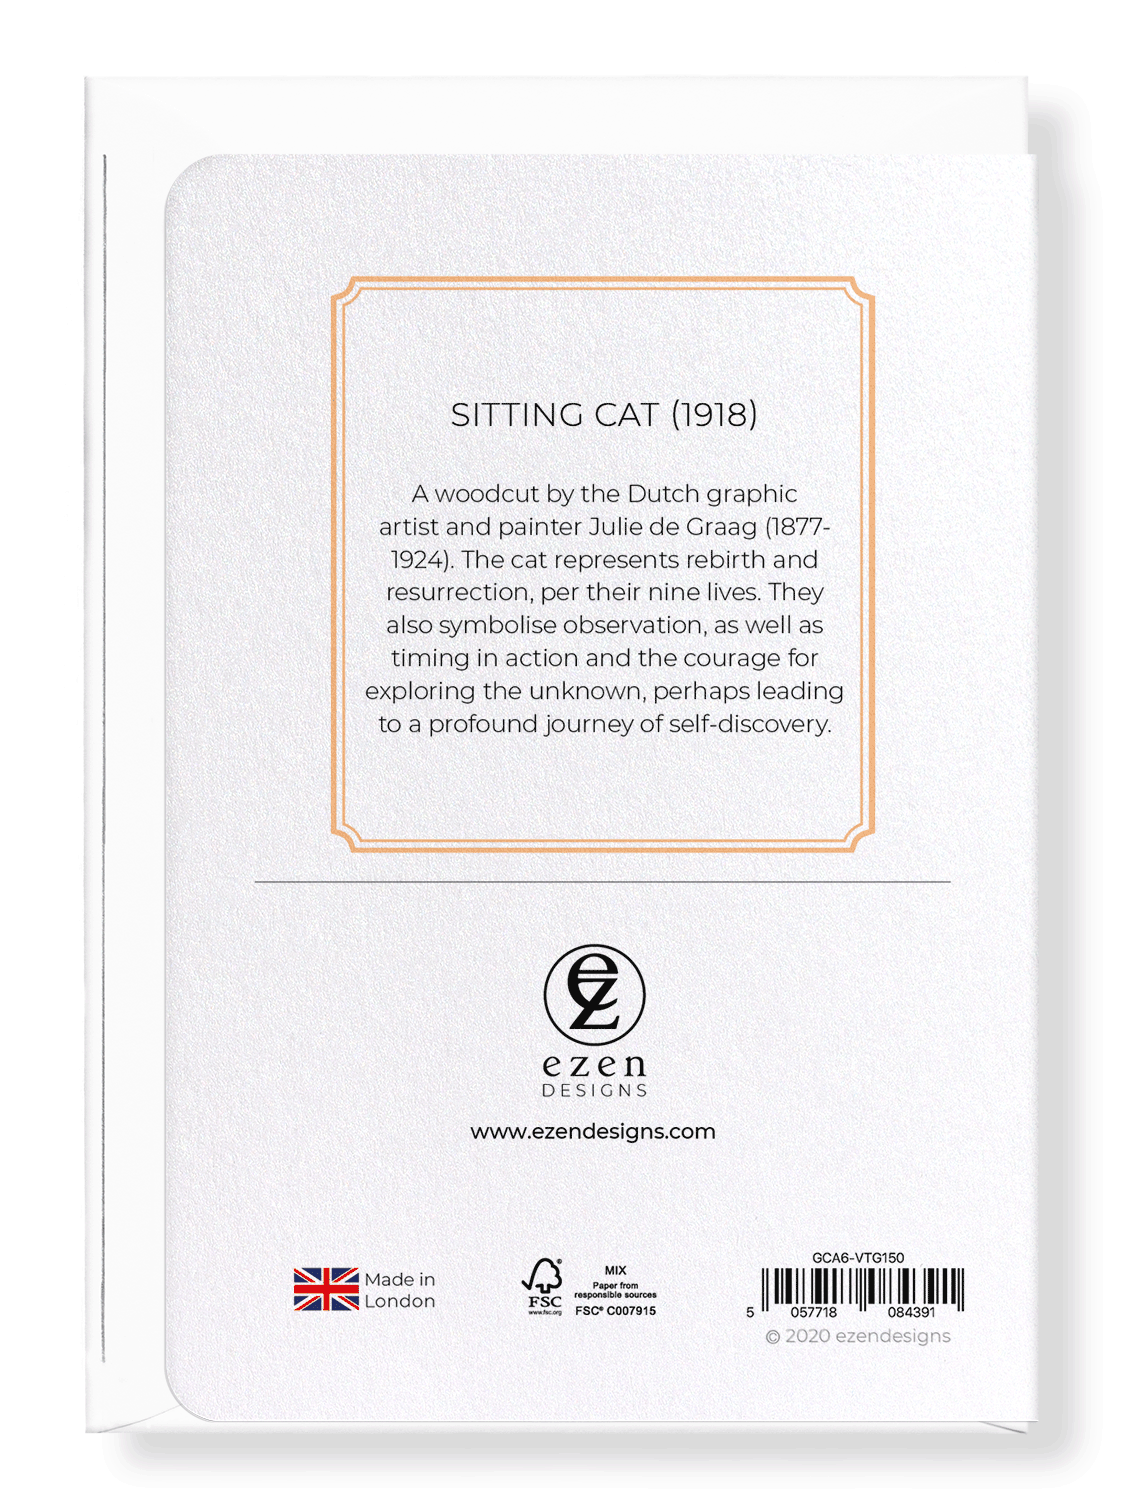 Ezen Designs - Sitting cat (1918) - Greeting Card - Back